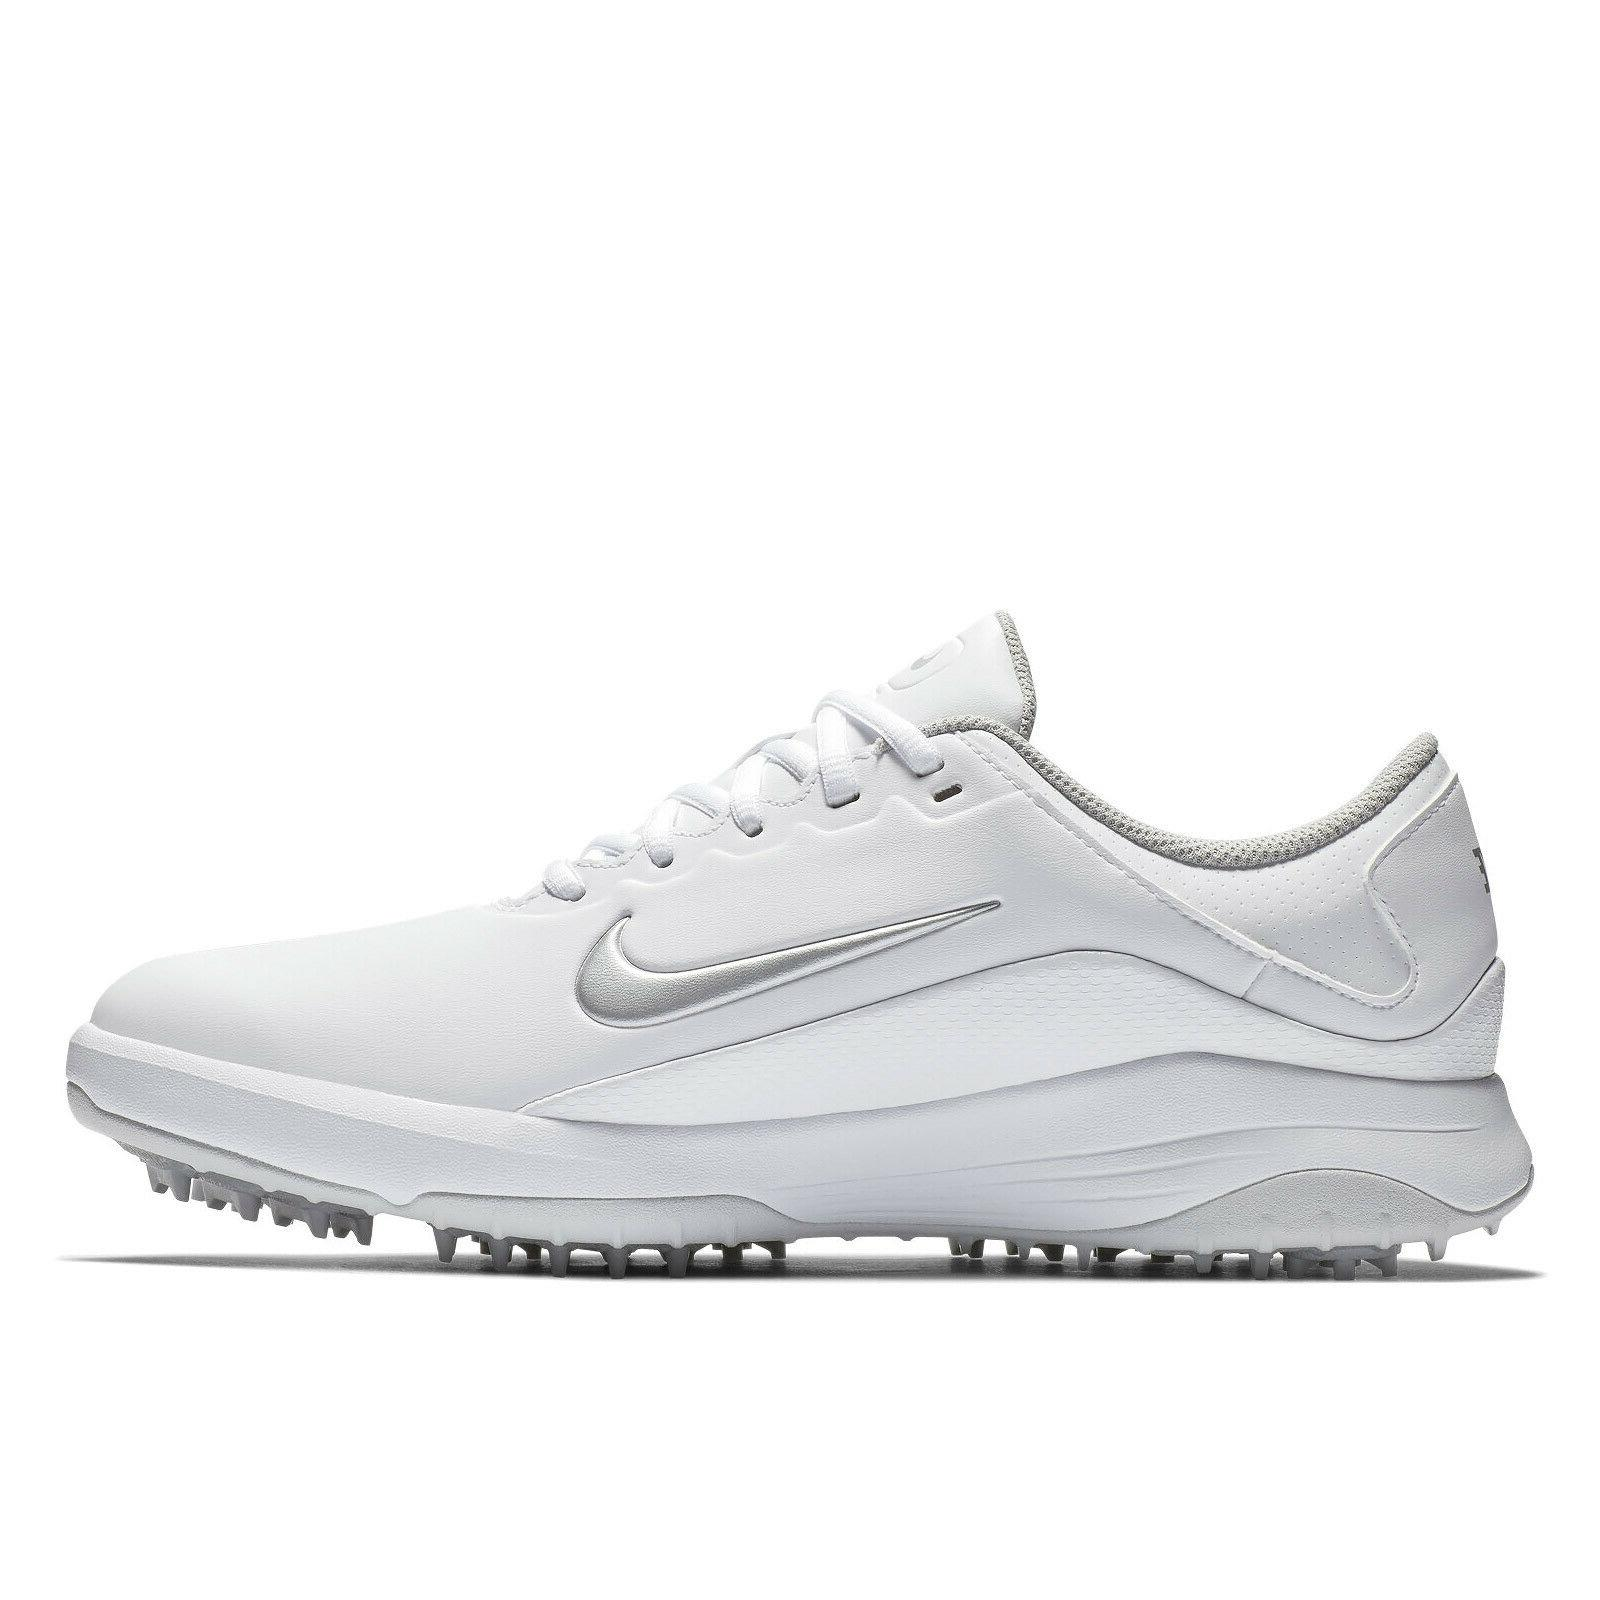 NIKE MENS SHOES Spikes, WIDE WIDTH,